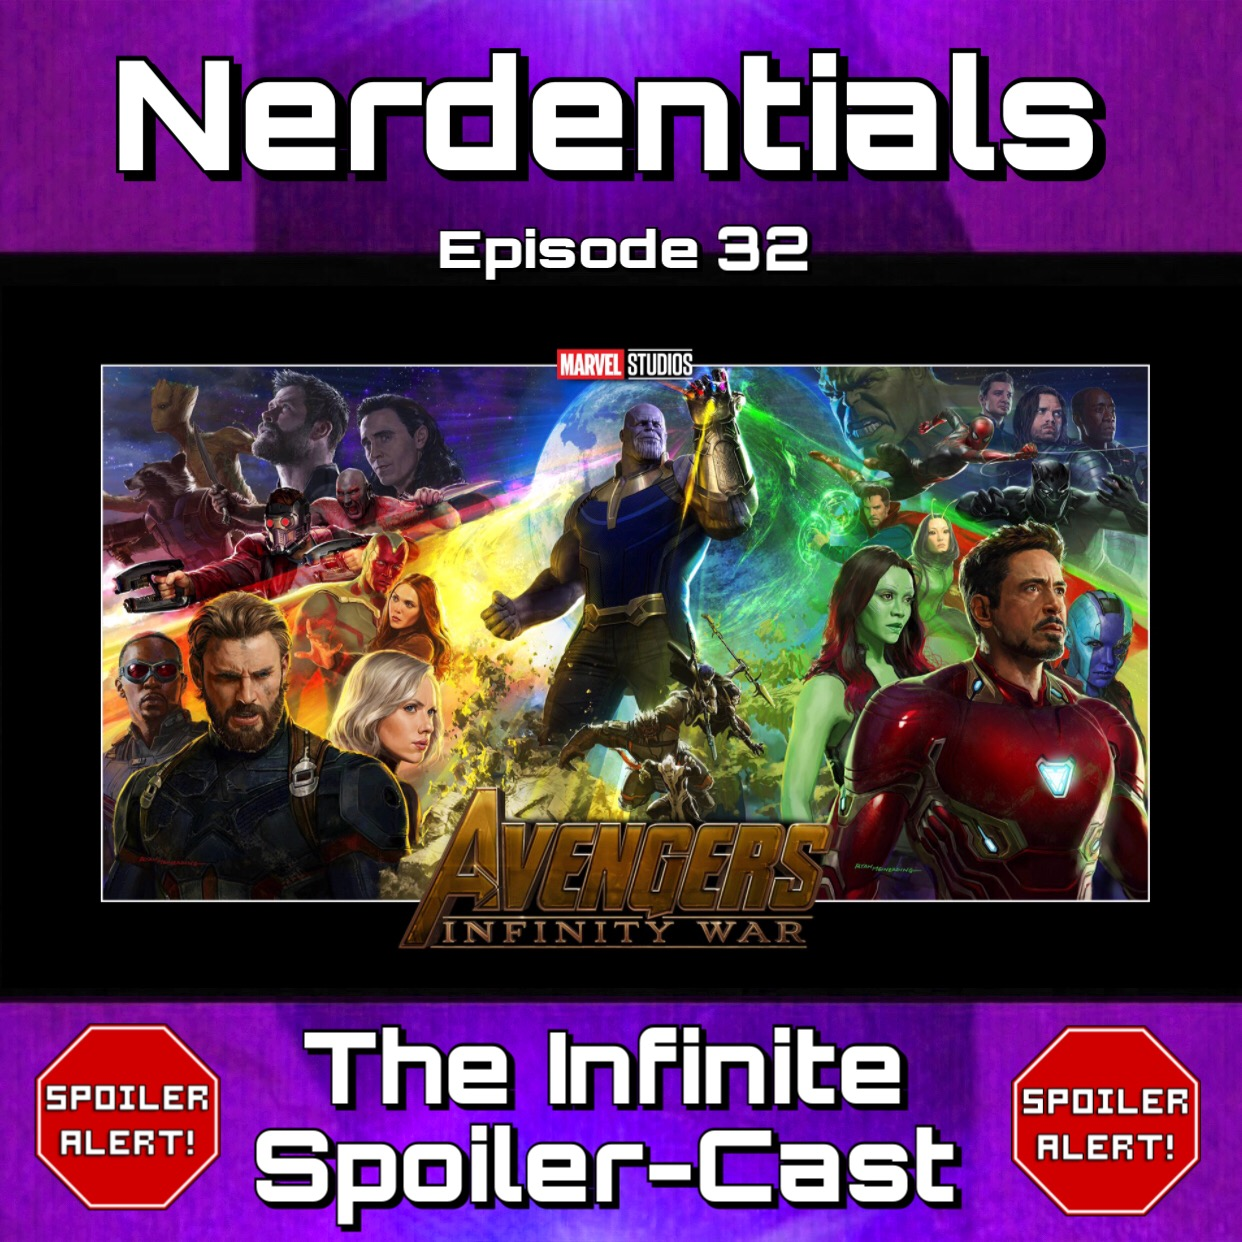 - Welcome to Nerdentials! Your weekly dose of the nerdy essentials. Covering Film, TV, Video Games and Comics. This week your 4 nerds, Joe, Matt, Nick and Lynn have all finally gone and seen the Marvel movie Avengers: Infinity War! WARNING!!! All the Spoilers in this one! If you haven't seen the Movie DO NOT WATCH!!!! You have been warned!